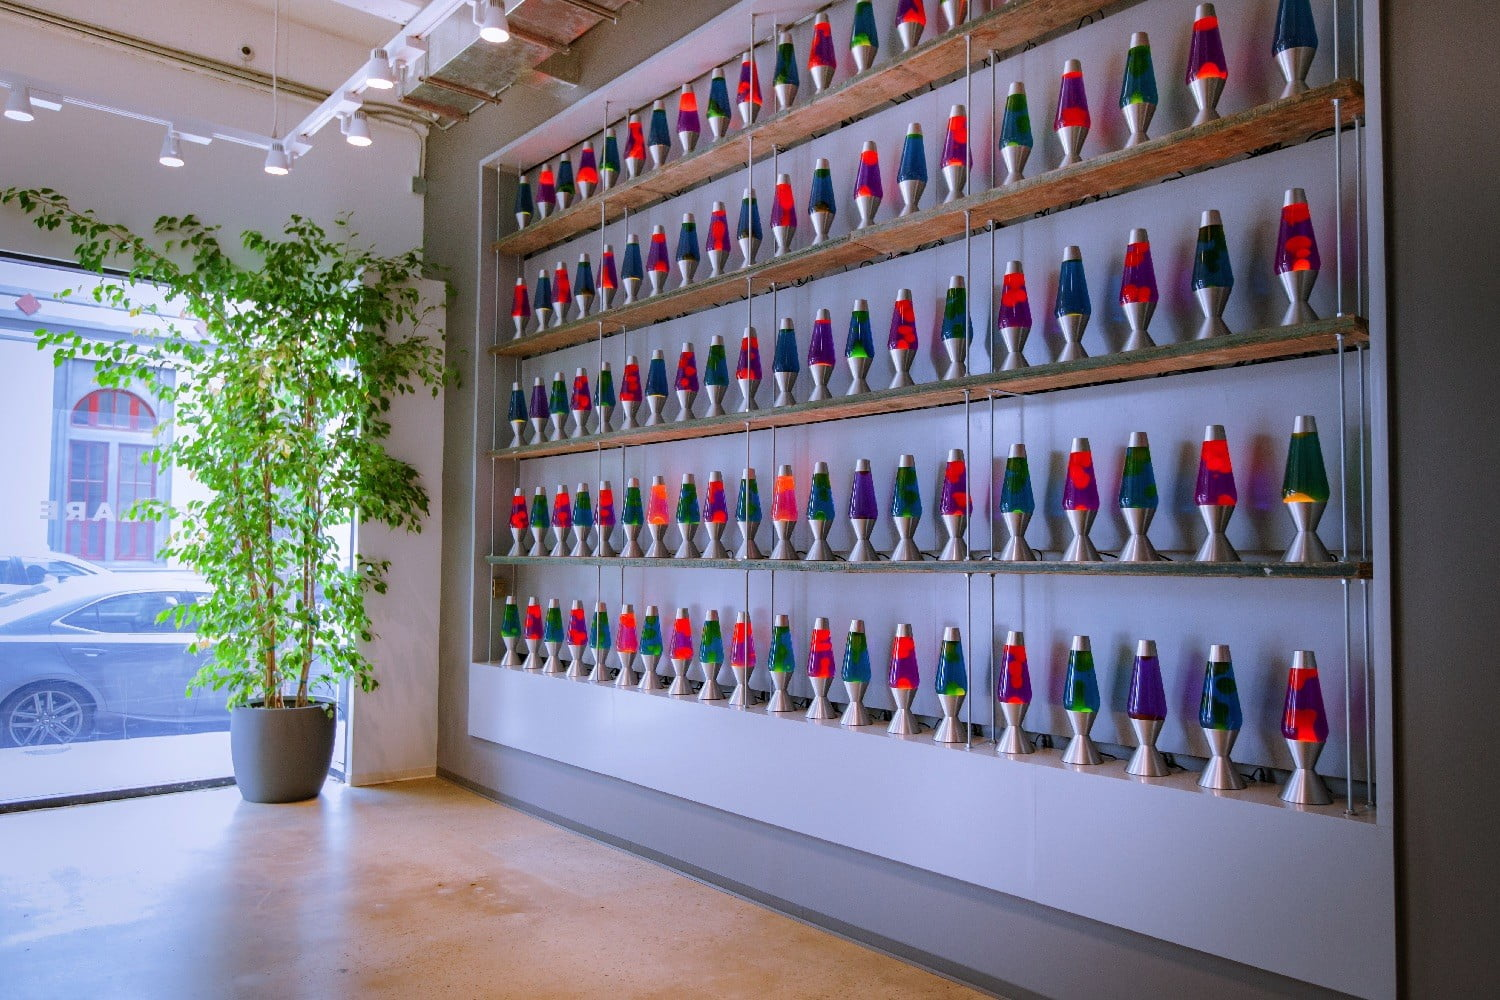 Sounds Crazy, But This Wall Of Lava Lamps Keeps You Protected From Hackers  | Digital Trends